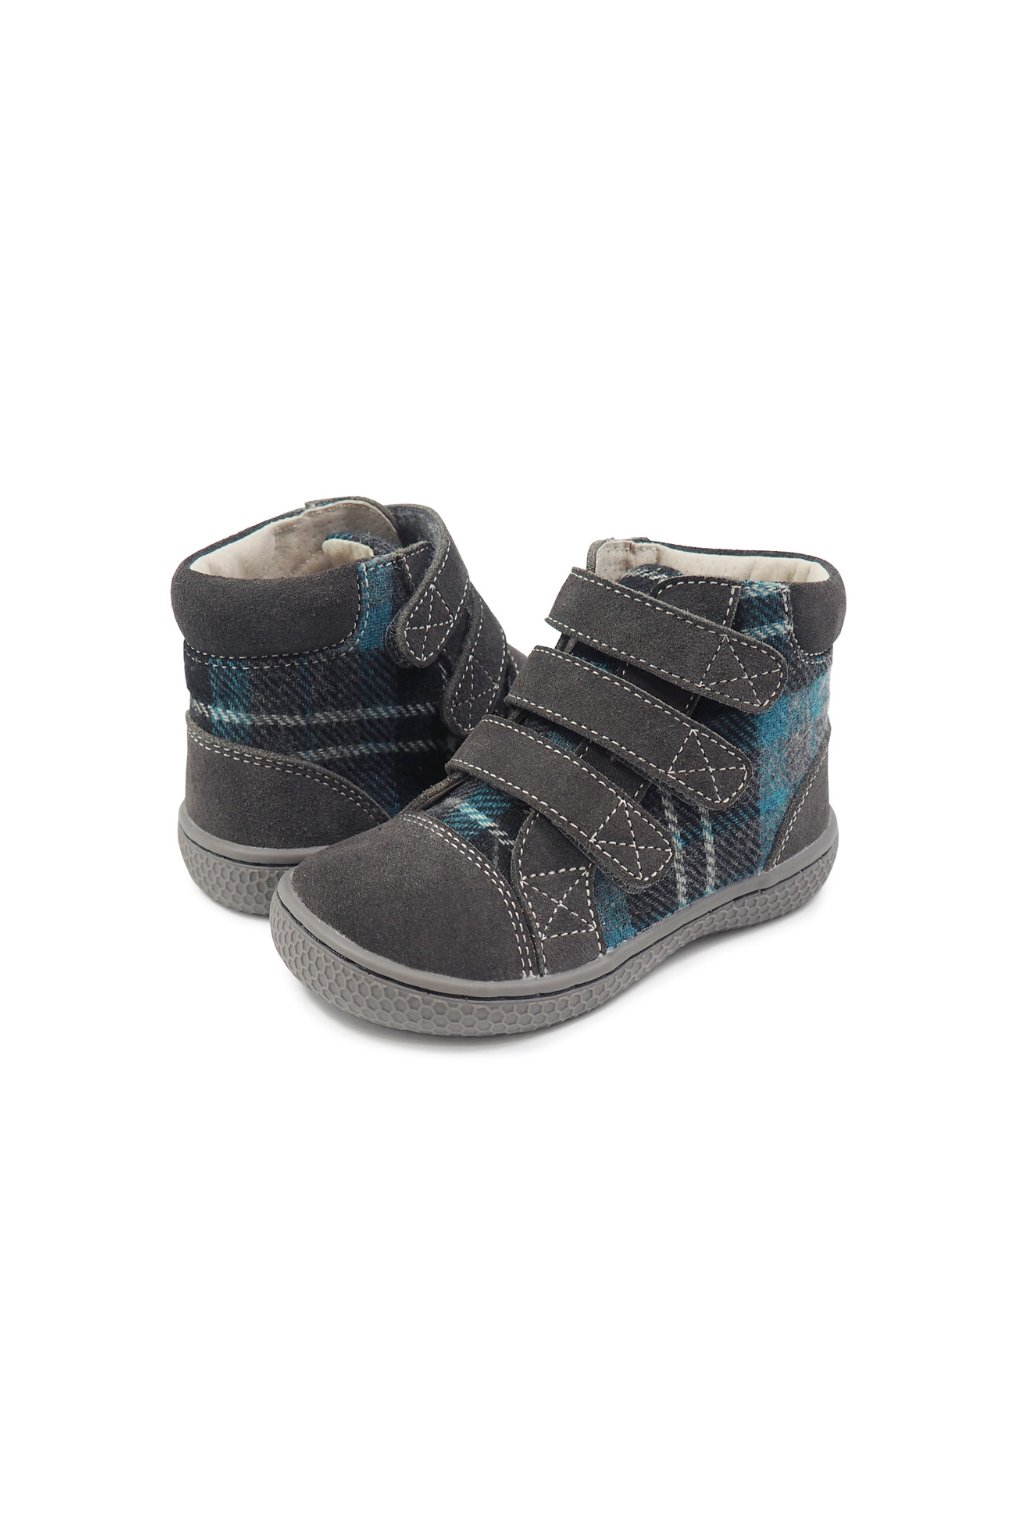 Livie and Luca Jamie Gray Plaid